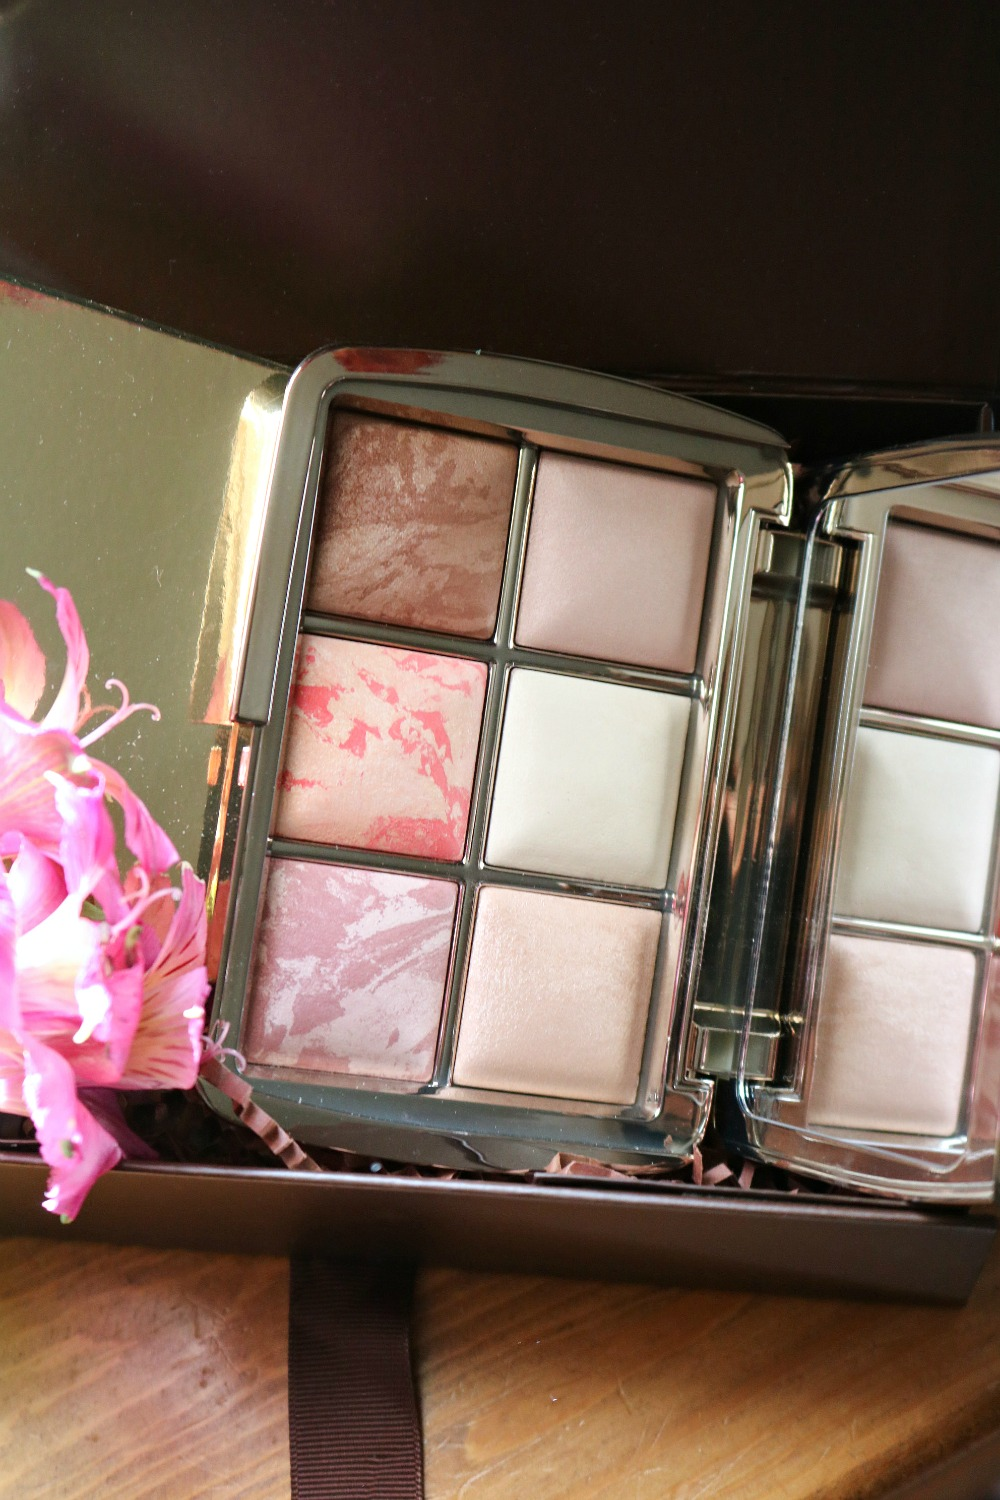 Hourglass Holiday 2020 Ambient Lighting Sculpture Edit Palette I Luxury Makeup Gift Guide I DreaminLace #GiftGuide #makeup #luxurymakeup #crueltyfreebeauty